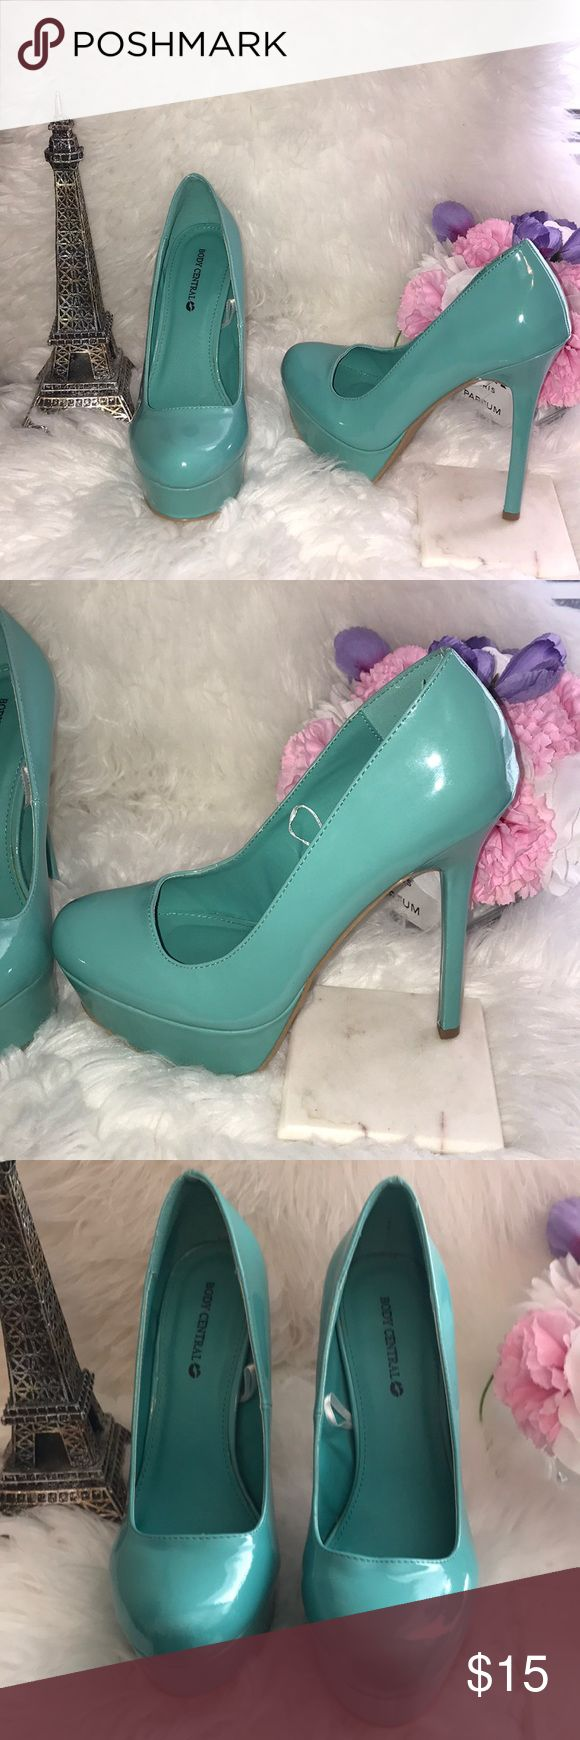 Body Central Pump Teal heels  Like new condition only worn ones for modeling purposes, beautiful super comfortable Teal Color heels, size 7.5 & 51/2 tall heels with a platform 1 1/2 for comfort. Body Central Shoes Heels